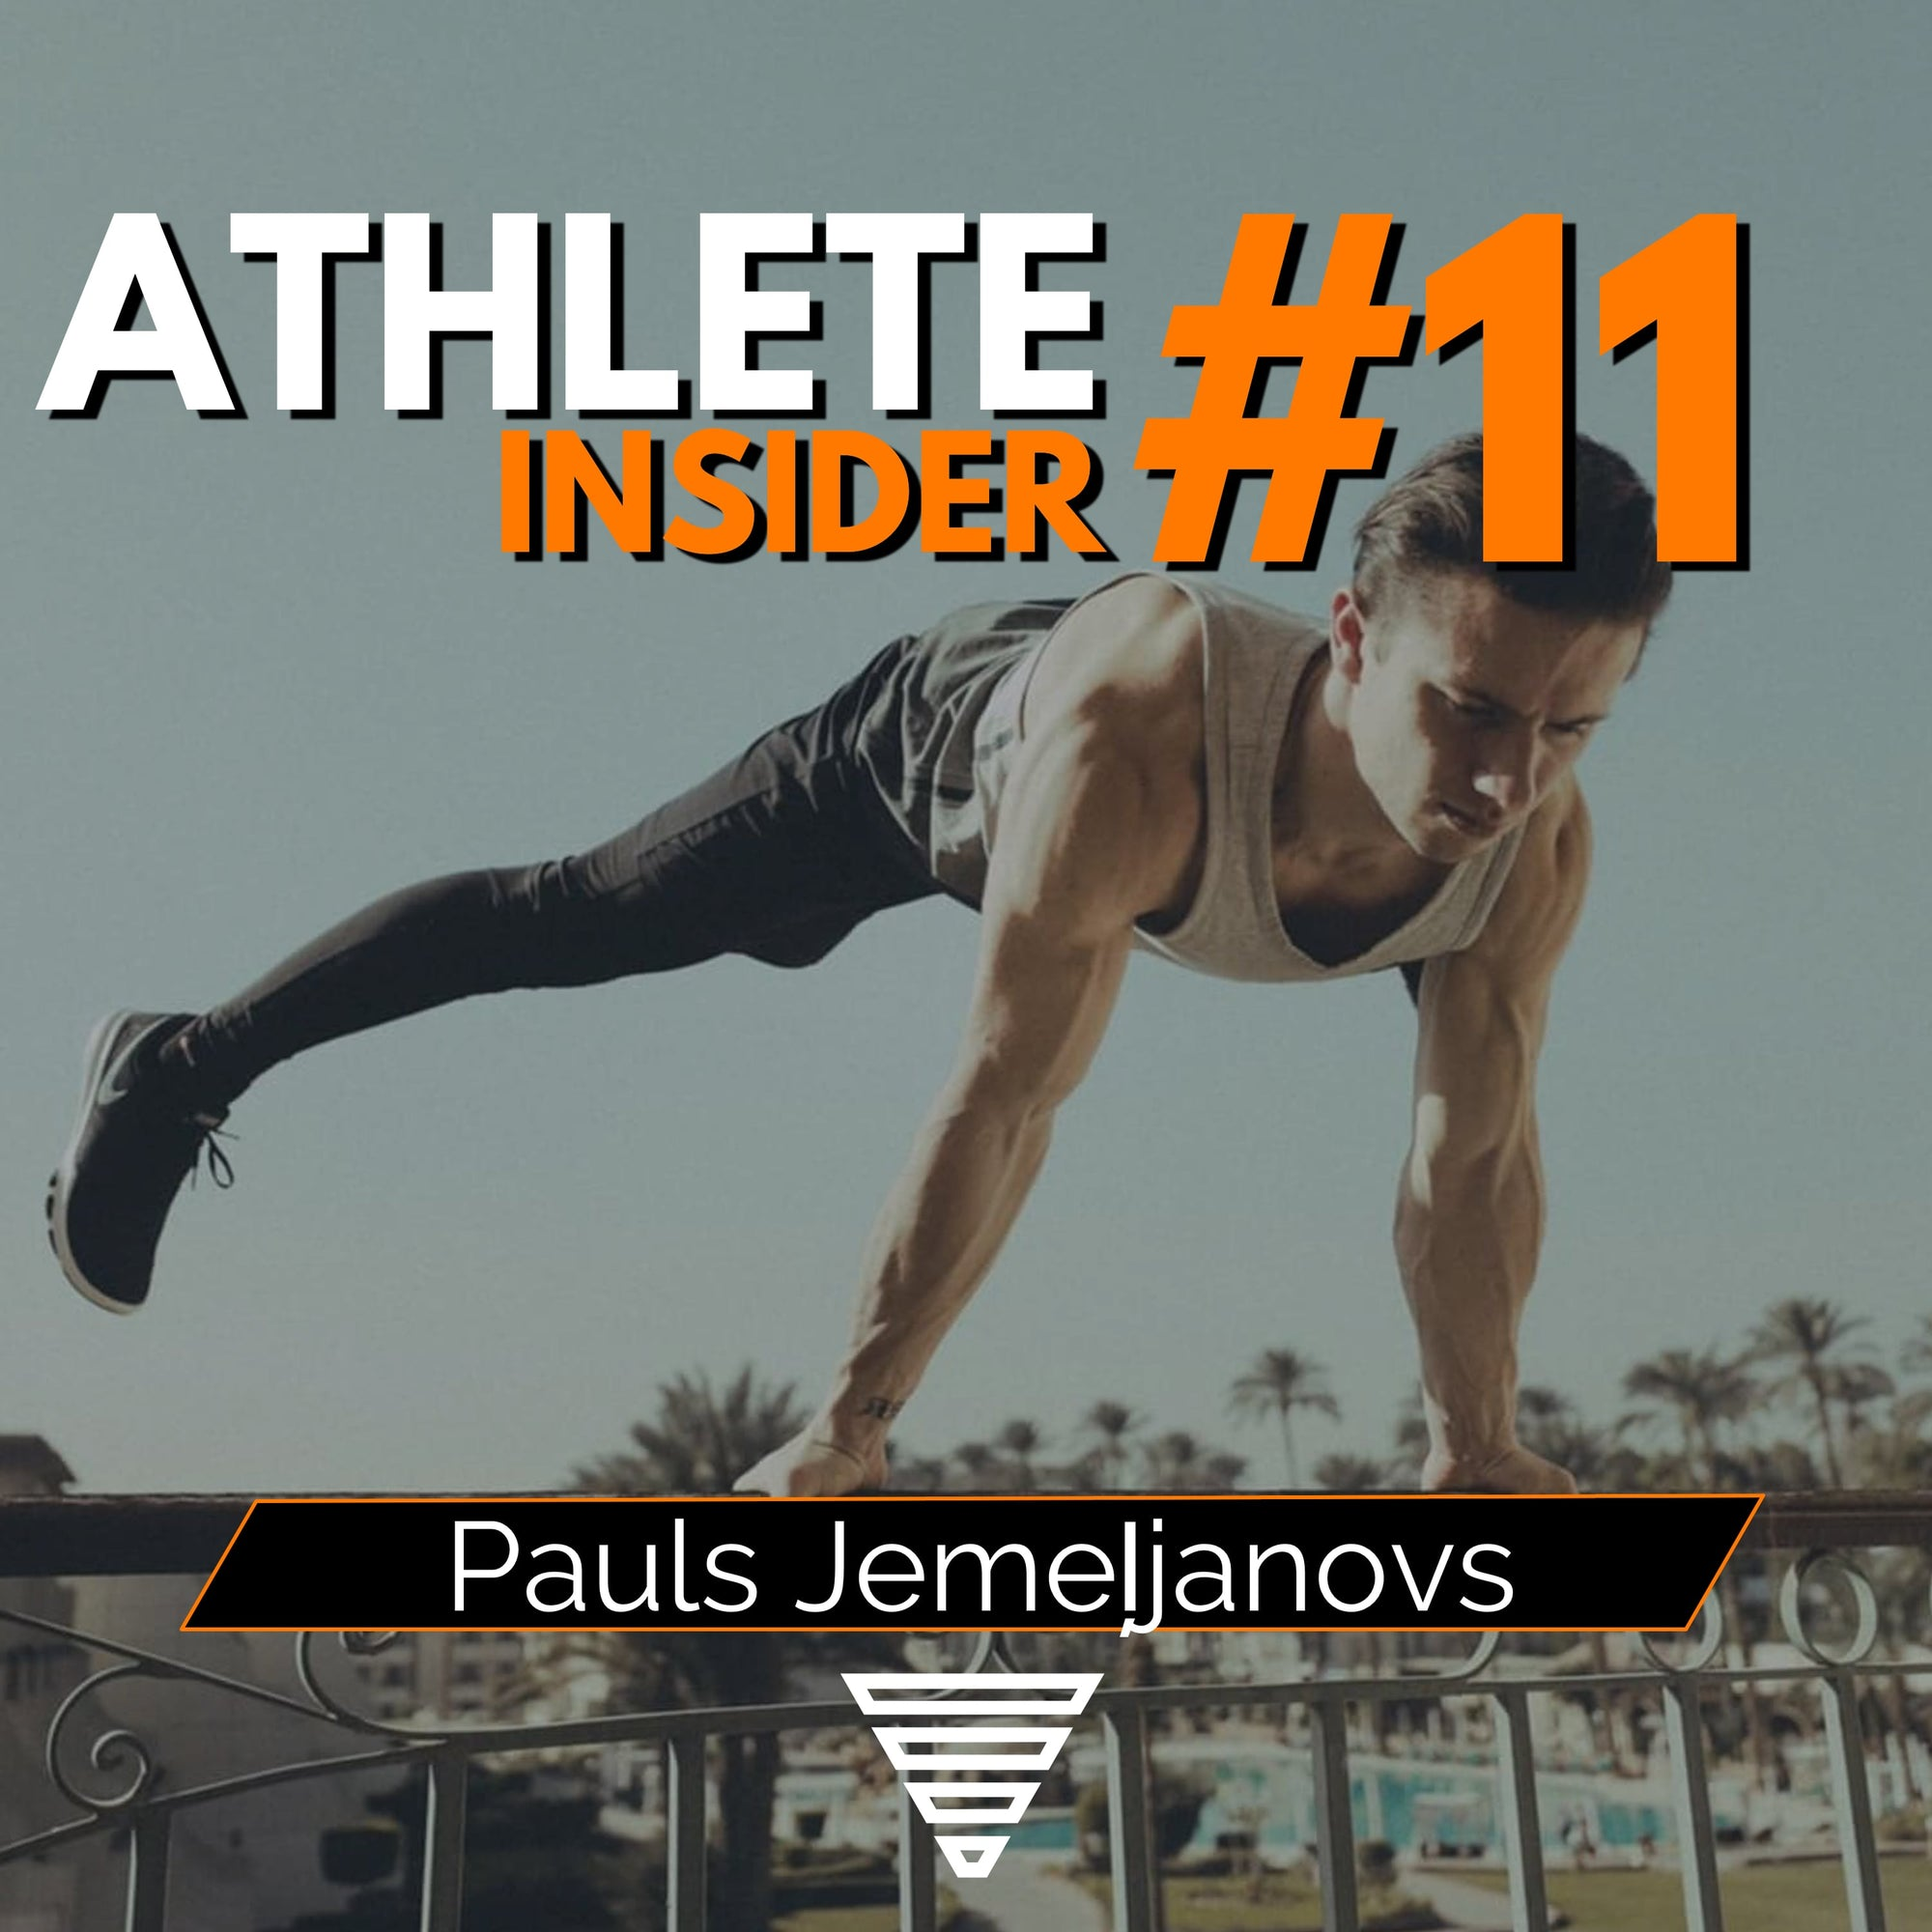 PAULS JEMELJANOVS | How Calisthenics saved my Life | The Athlete Insider Podcast #11